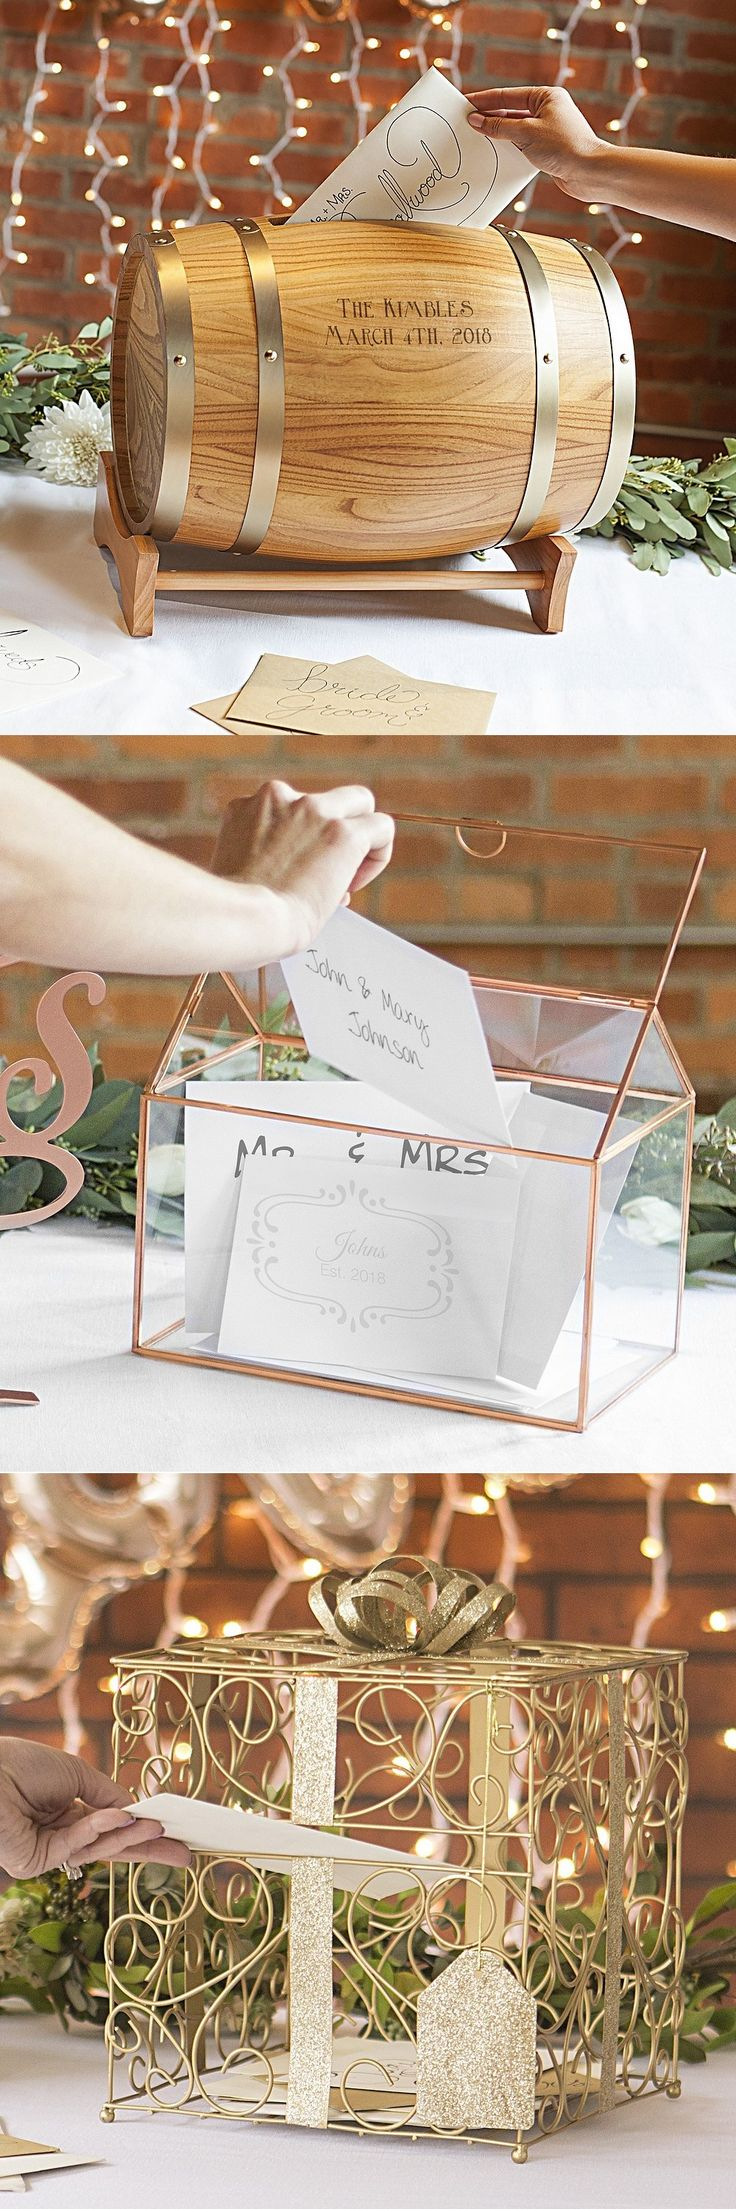 Wedding Gift Card Holder Ideas - When deciding on a gift card holder style that is right for you, consider a unique card box or holder that will add interest to your gift table and can be a useful keepsake to display in your home after the wedding. These gift card holders can be purchased at https://myweddingreceptionideas.com/gift_card_money_holder_boxes.asp